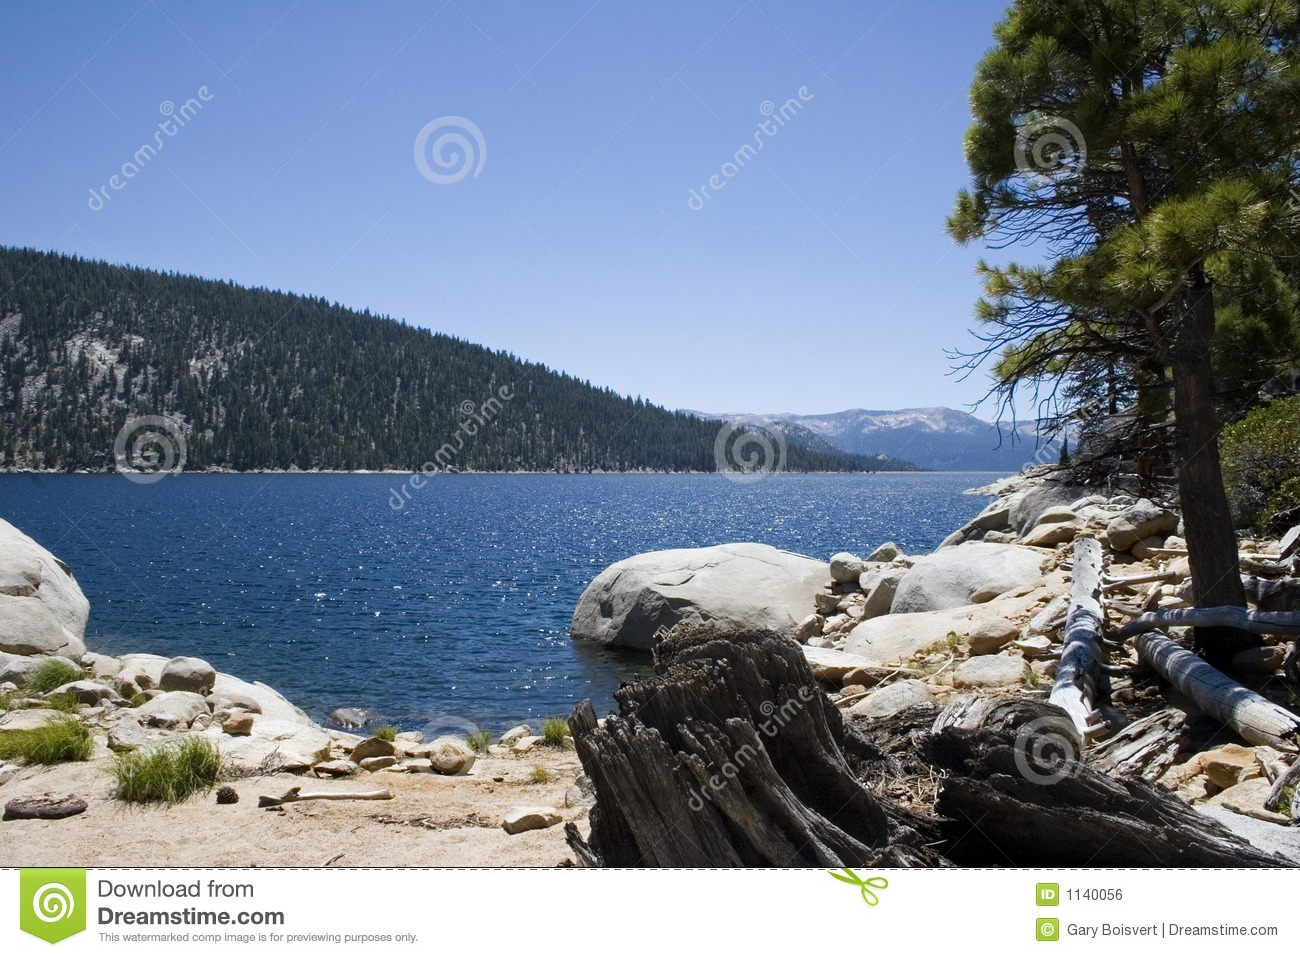 scenic mountain lake,Edison lake